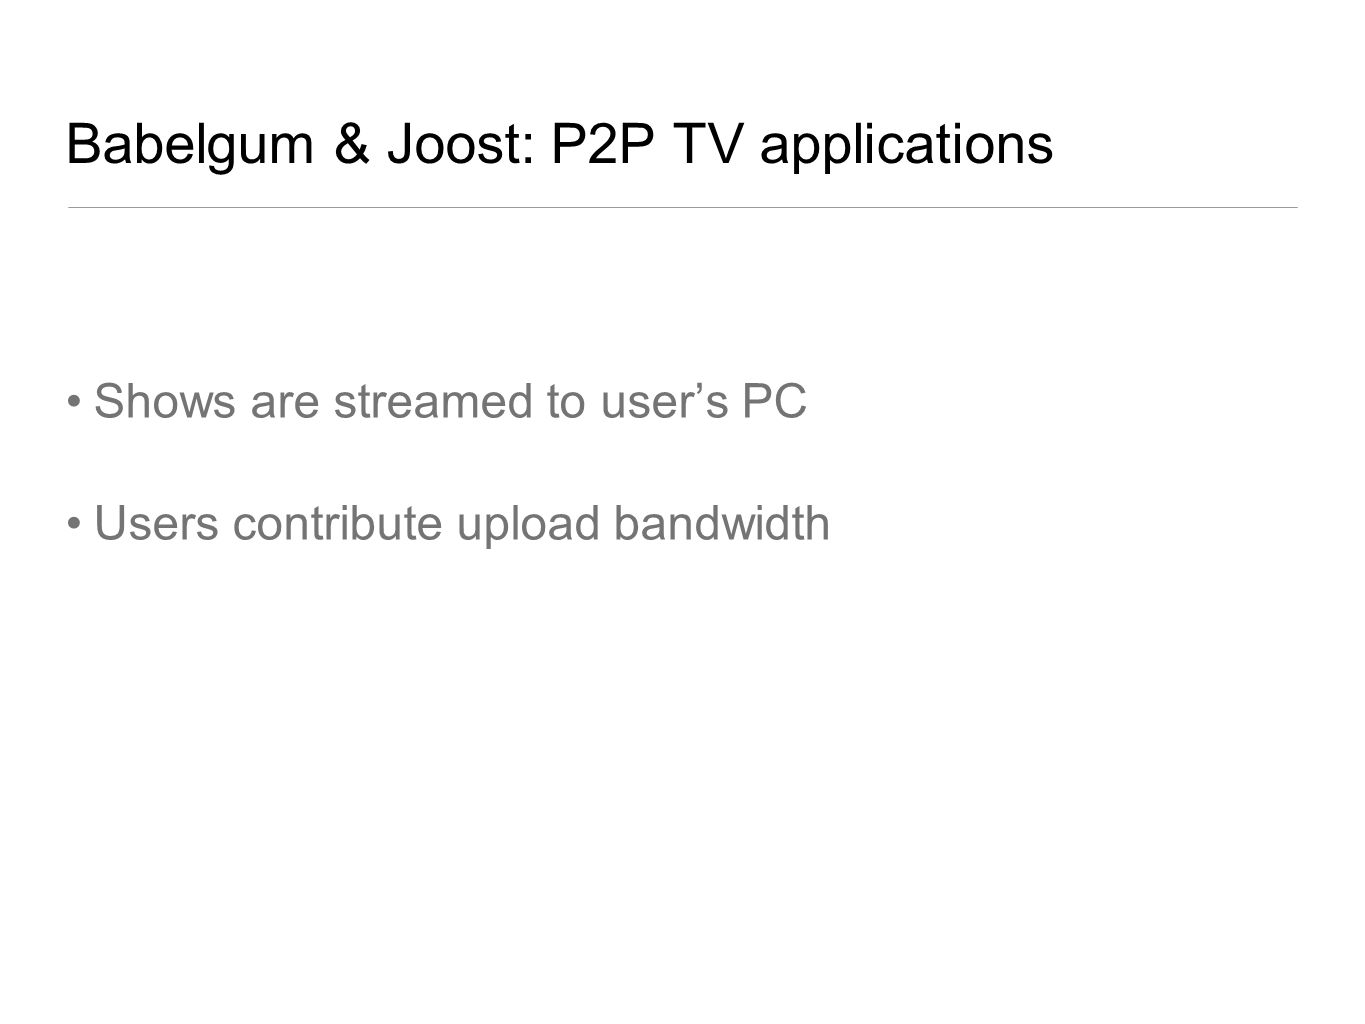 Babelgum & Joost: P2P TV applications Shows are streamed to users PC Users contribute upload bandwidth